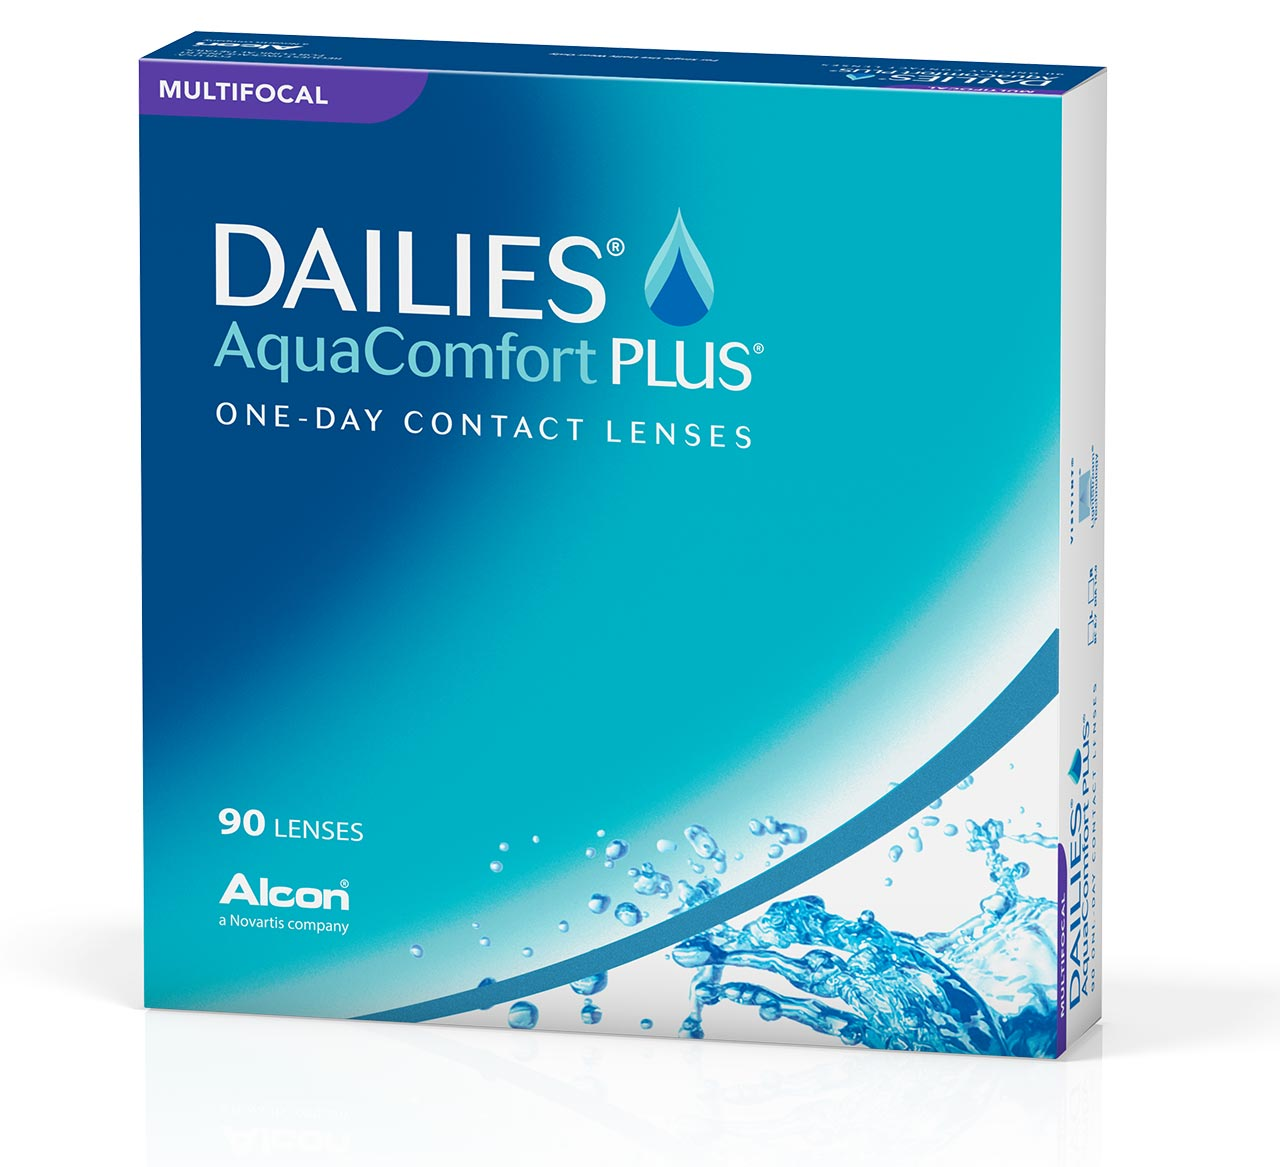 DAILIES AquaComfort Plus Multifocal 90box